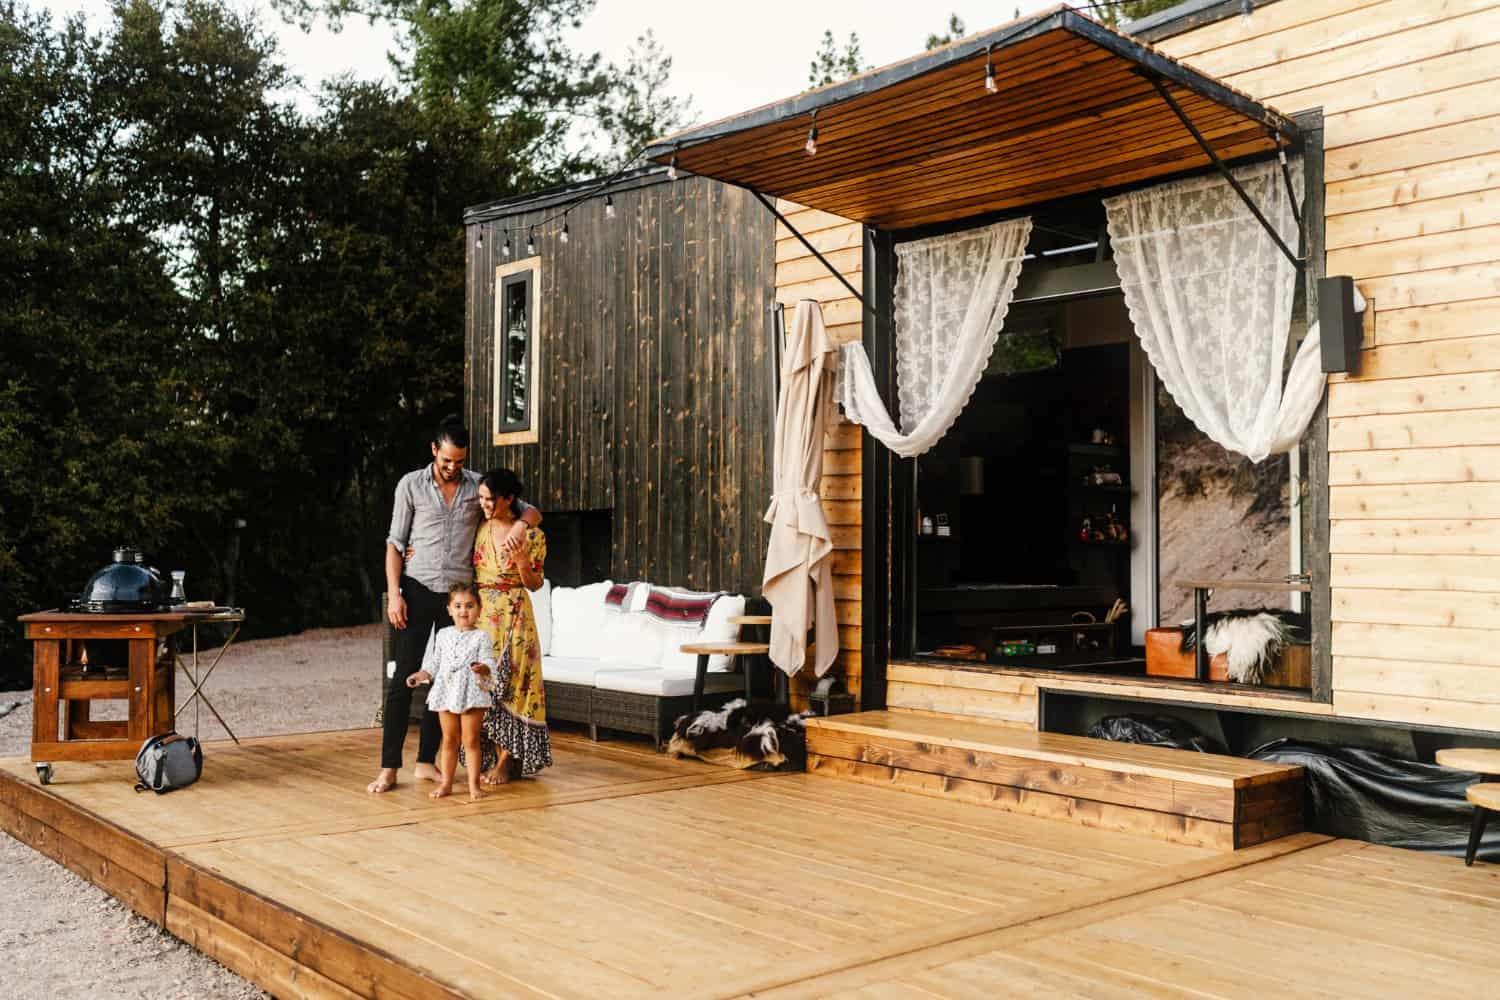 At Home with Brooke White in Thousand Oaks, California - A